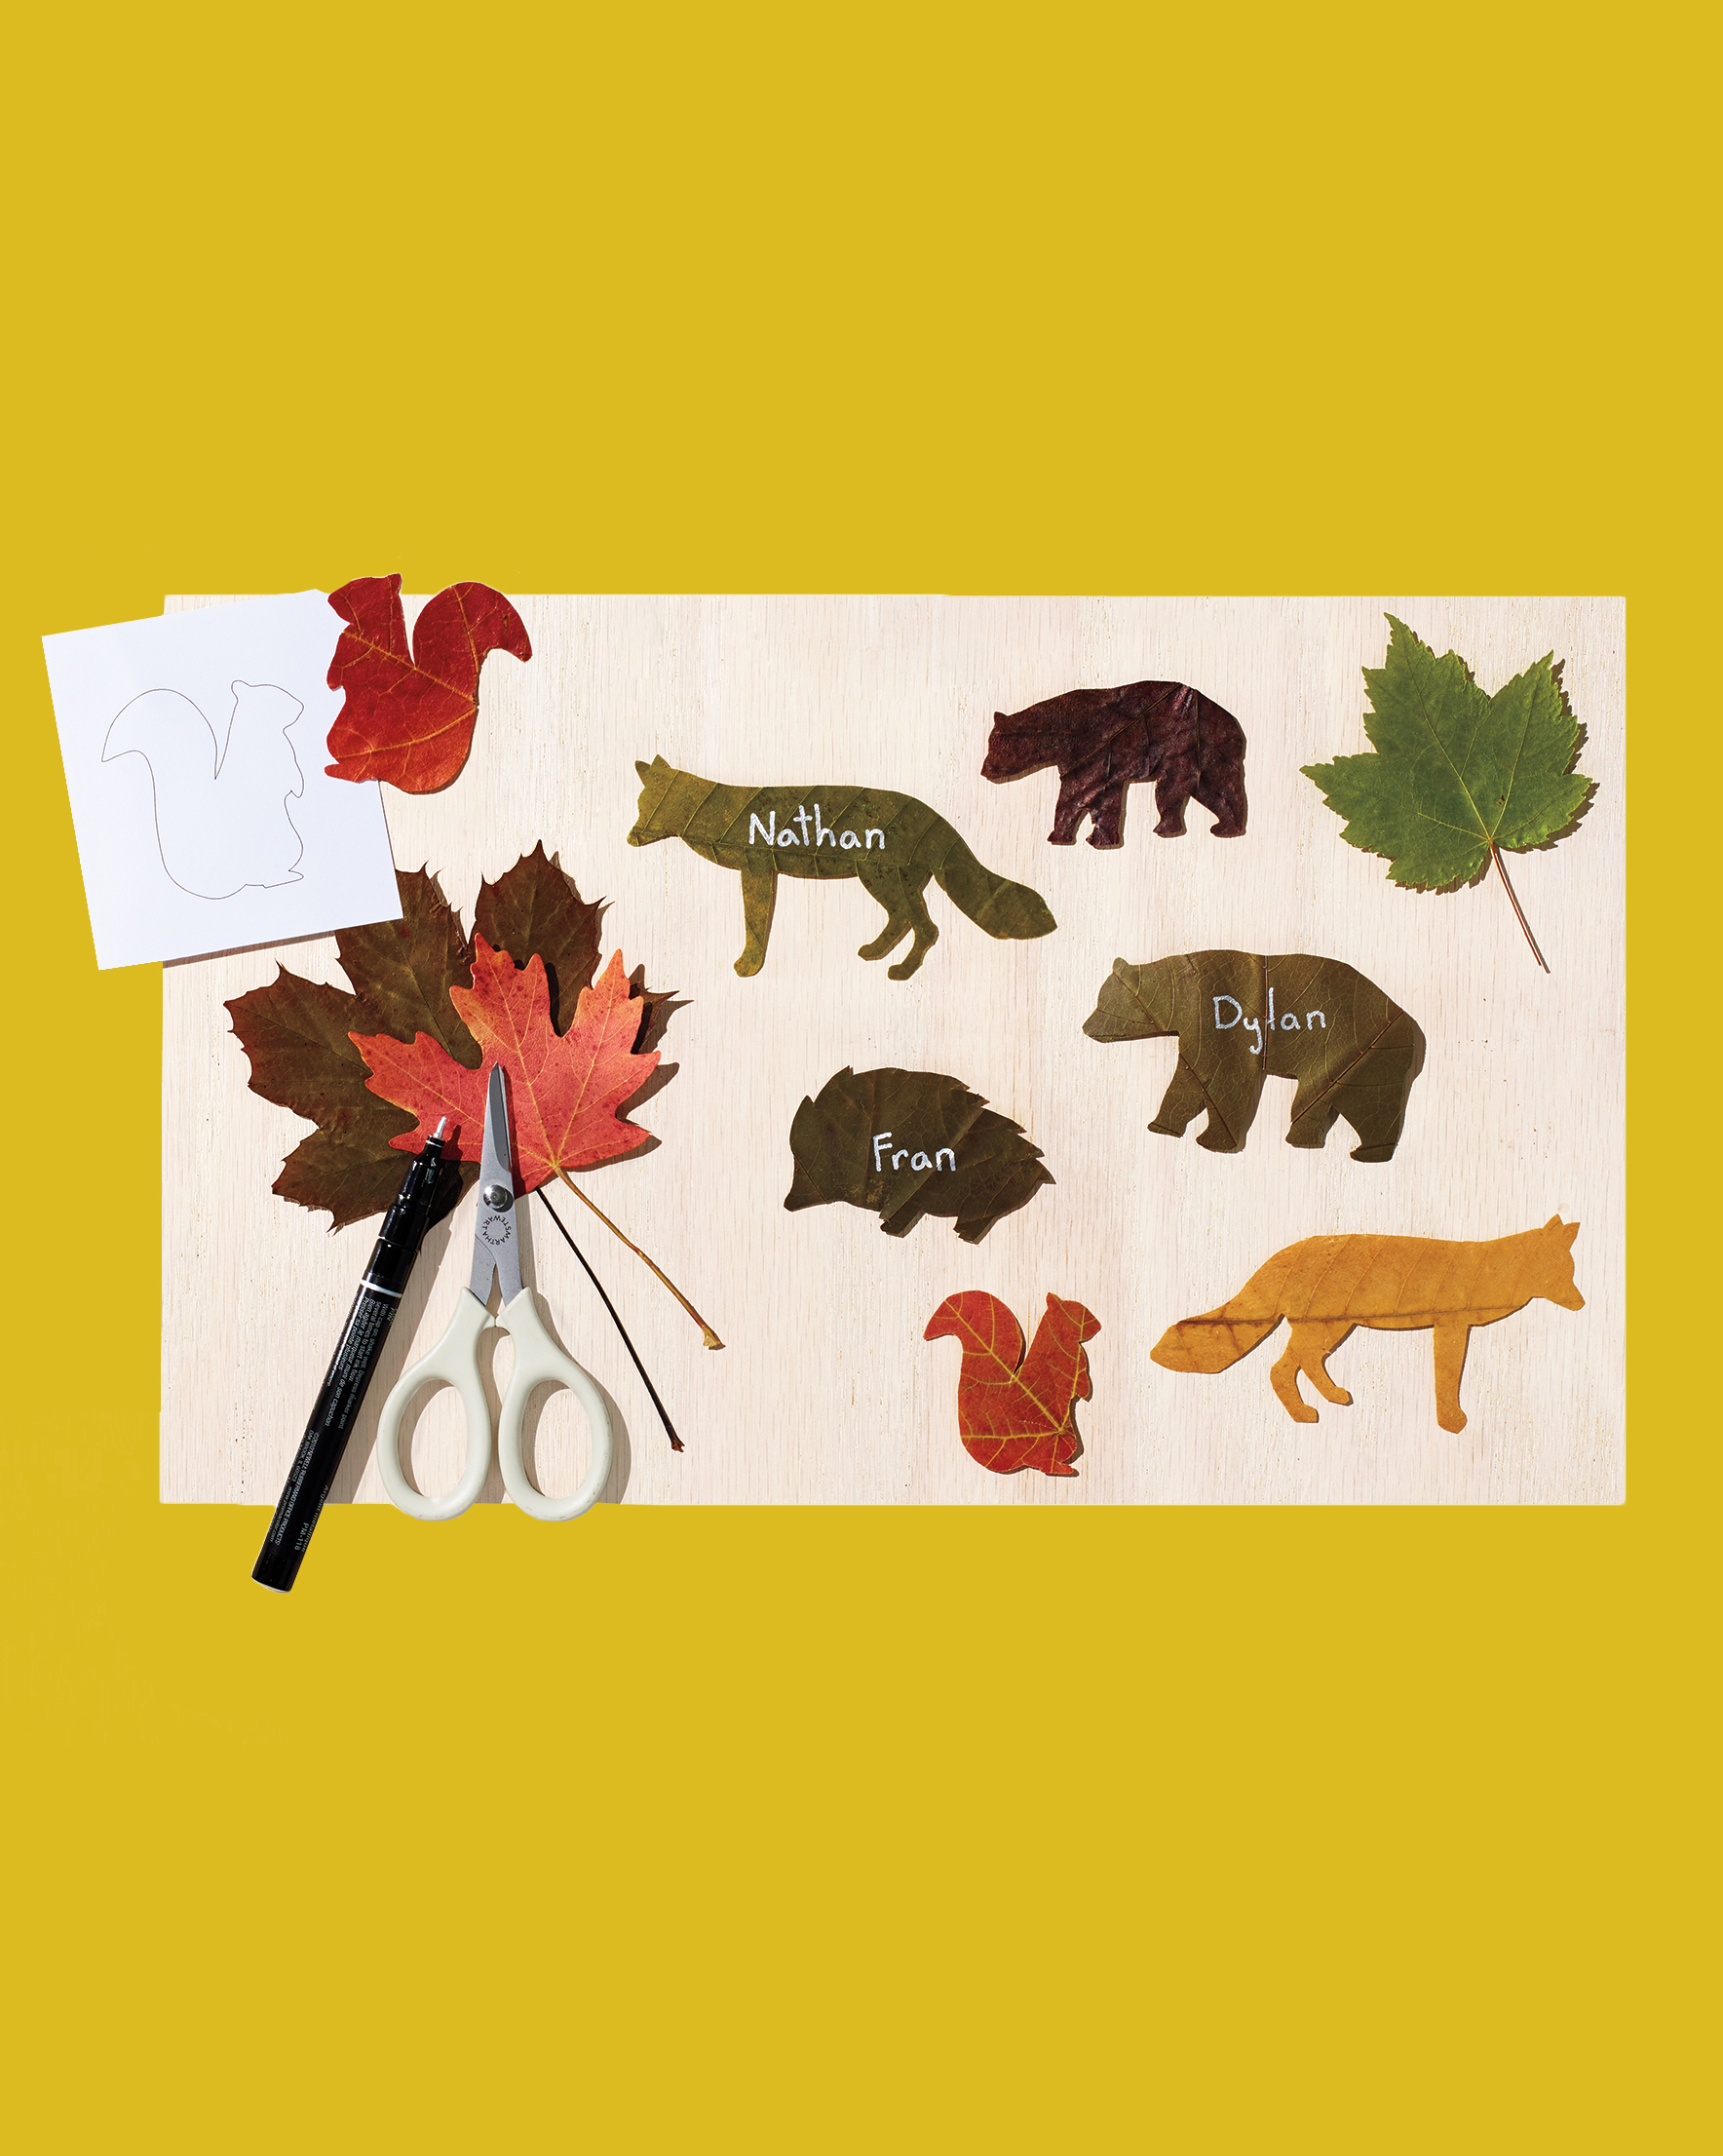 crafting materials and leaf animal place cards